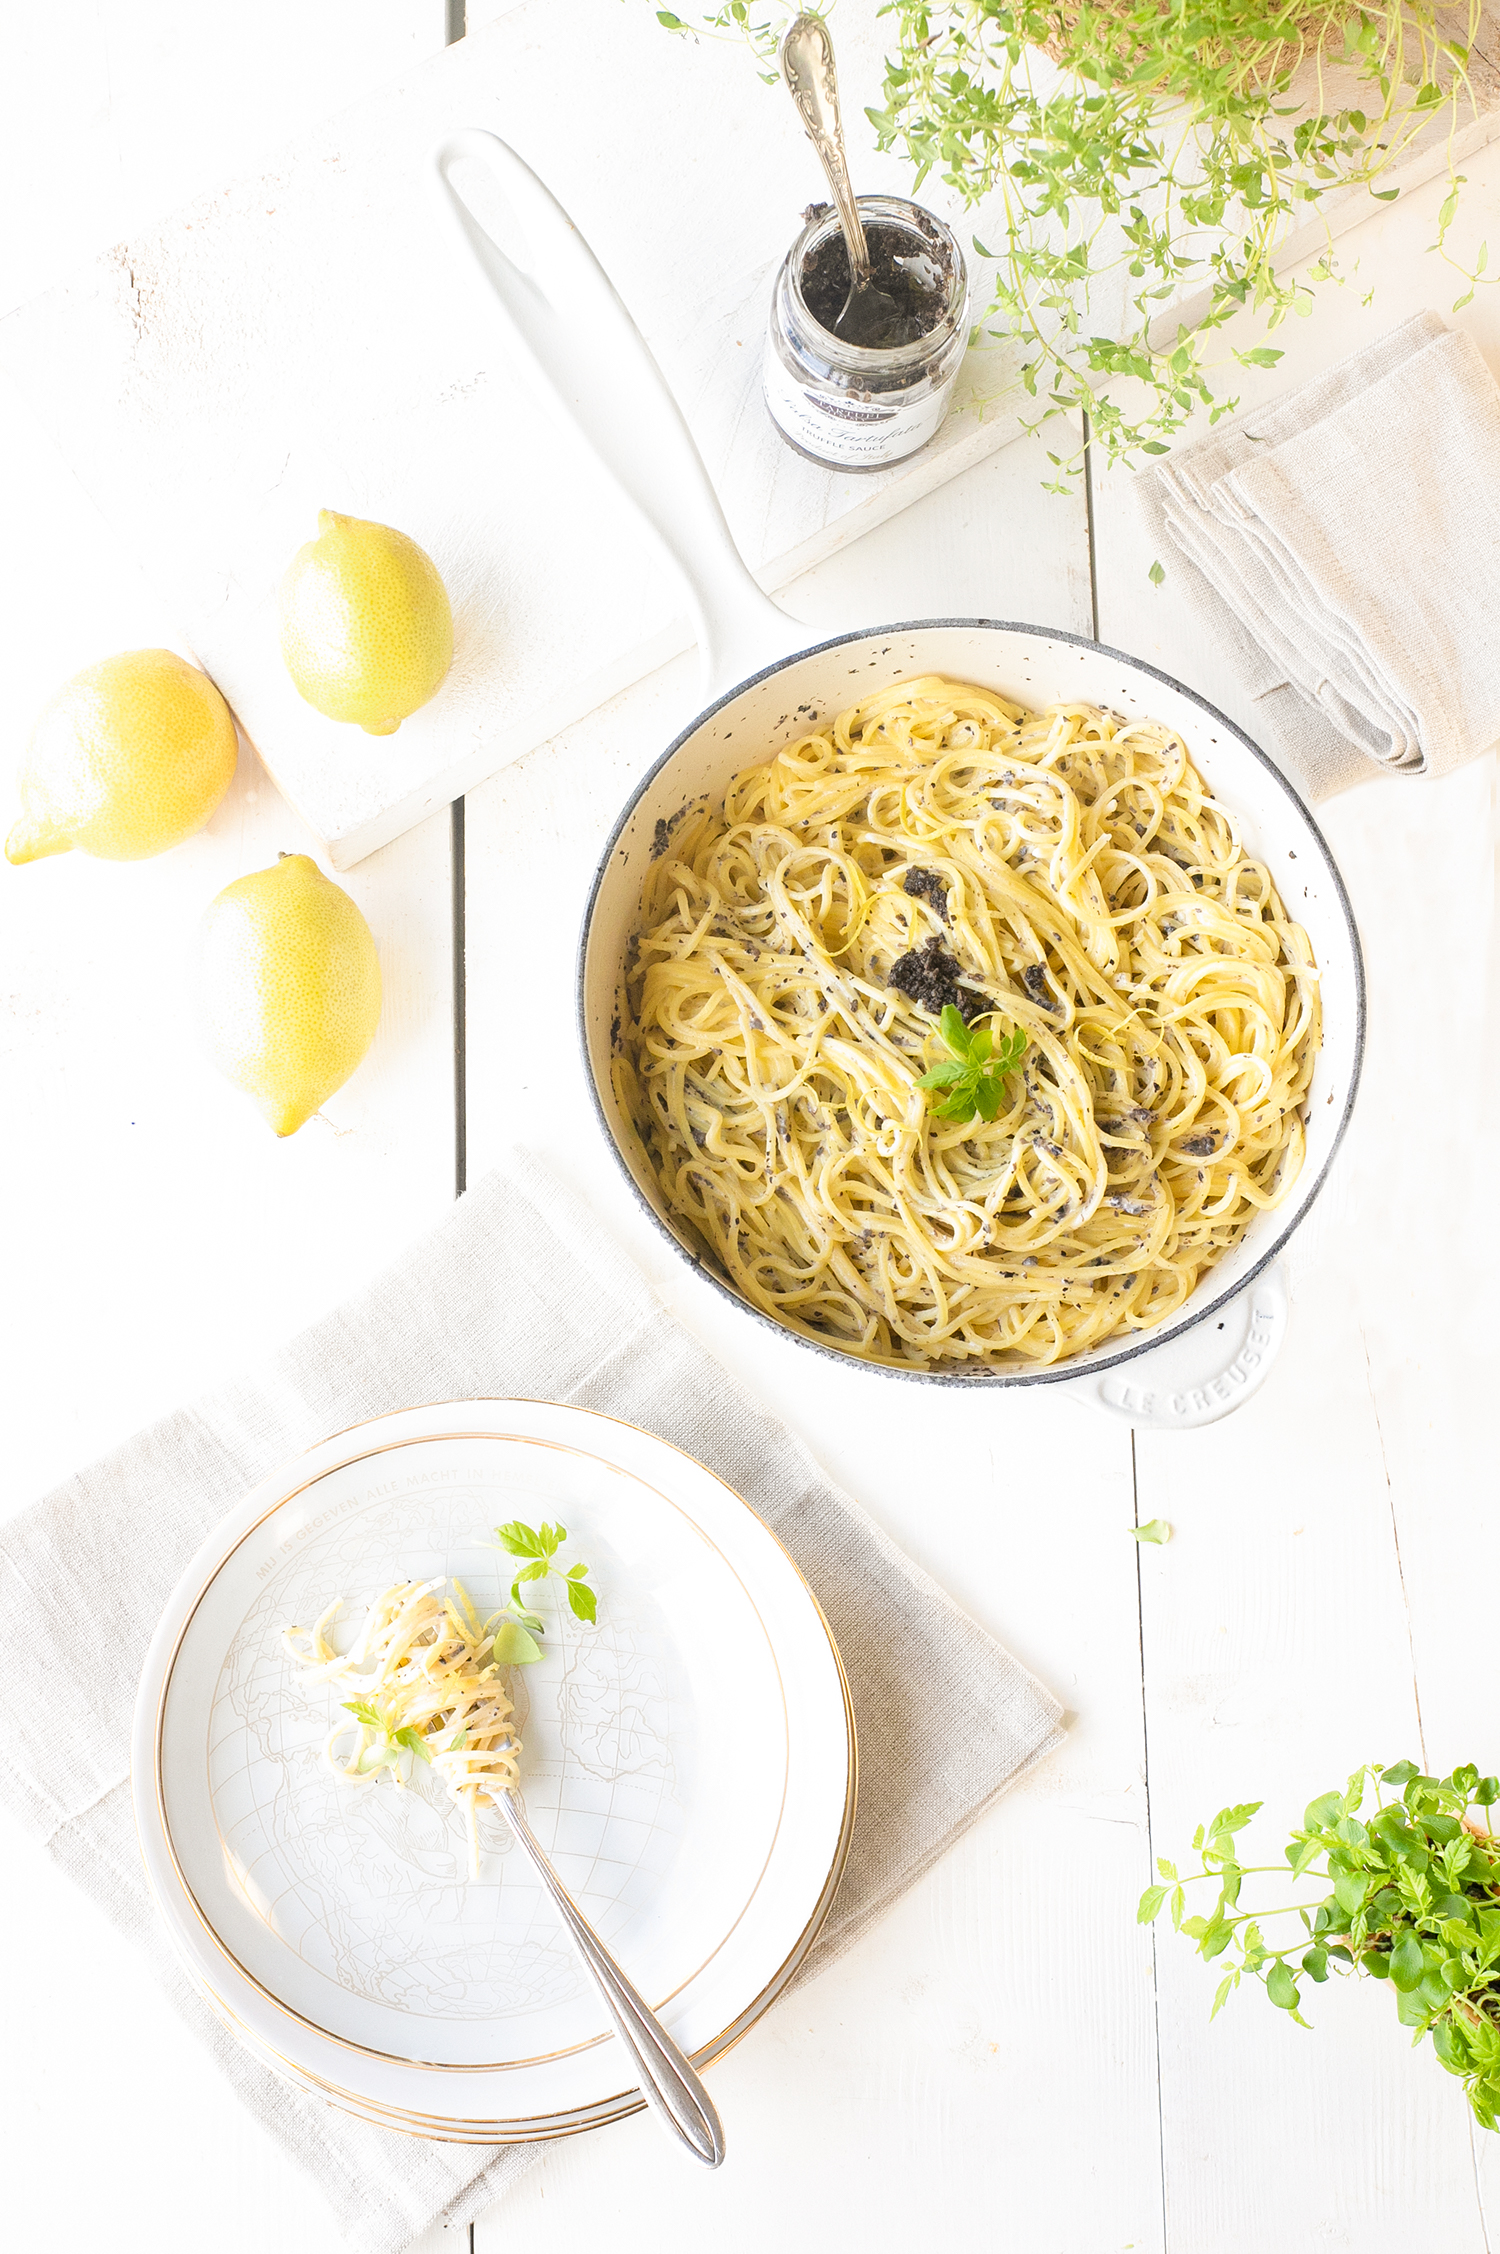 Truffel pasta met room en citroen 'The Lemon Kitchen